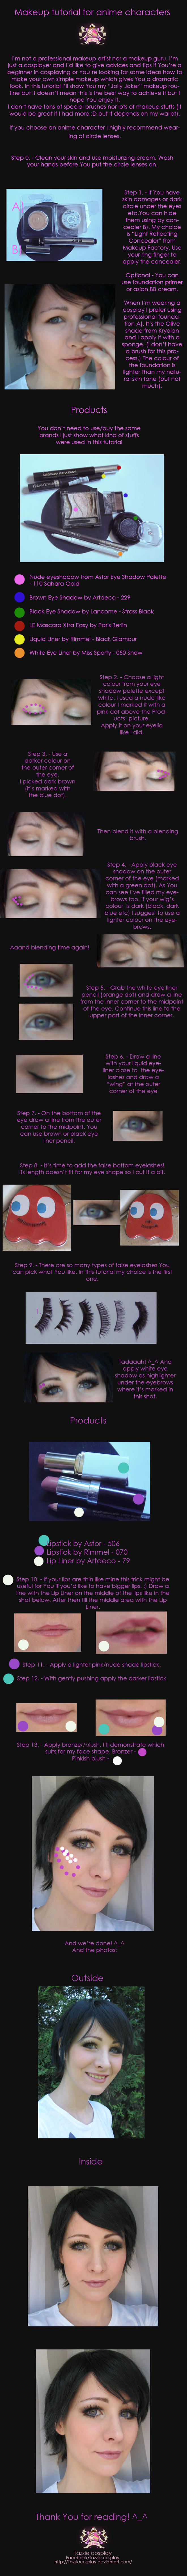 Cosplay makeup tutorial for anime characters by Tazziecosplay